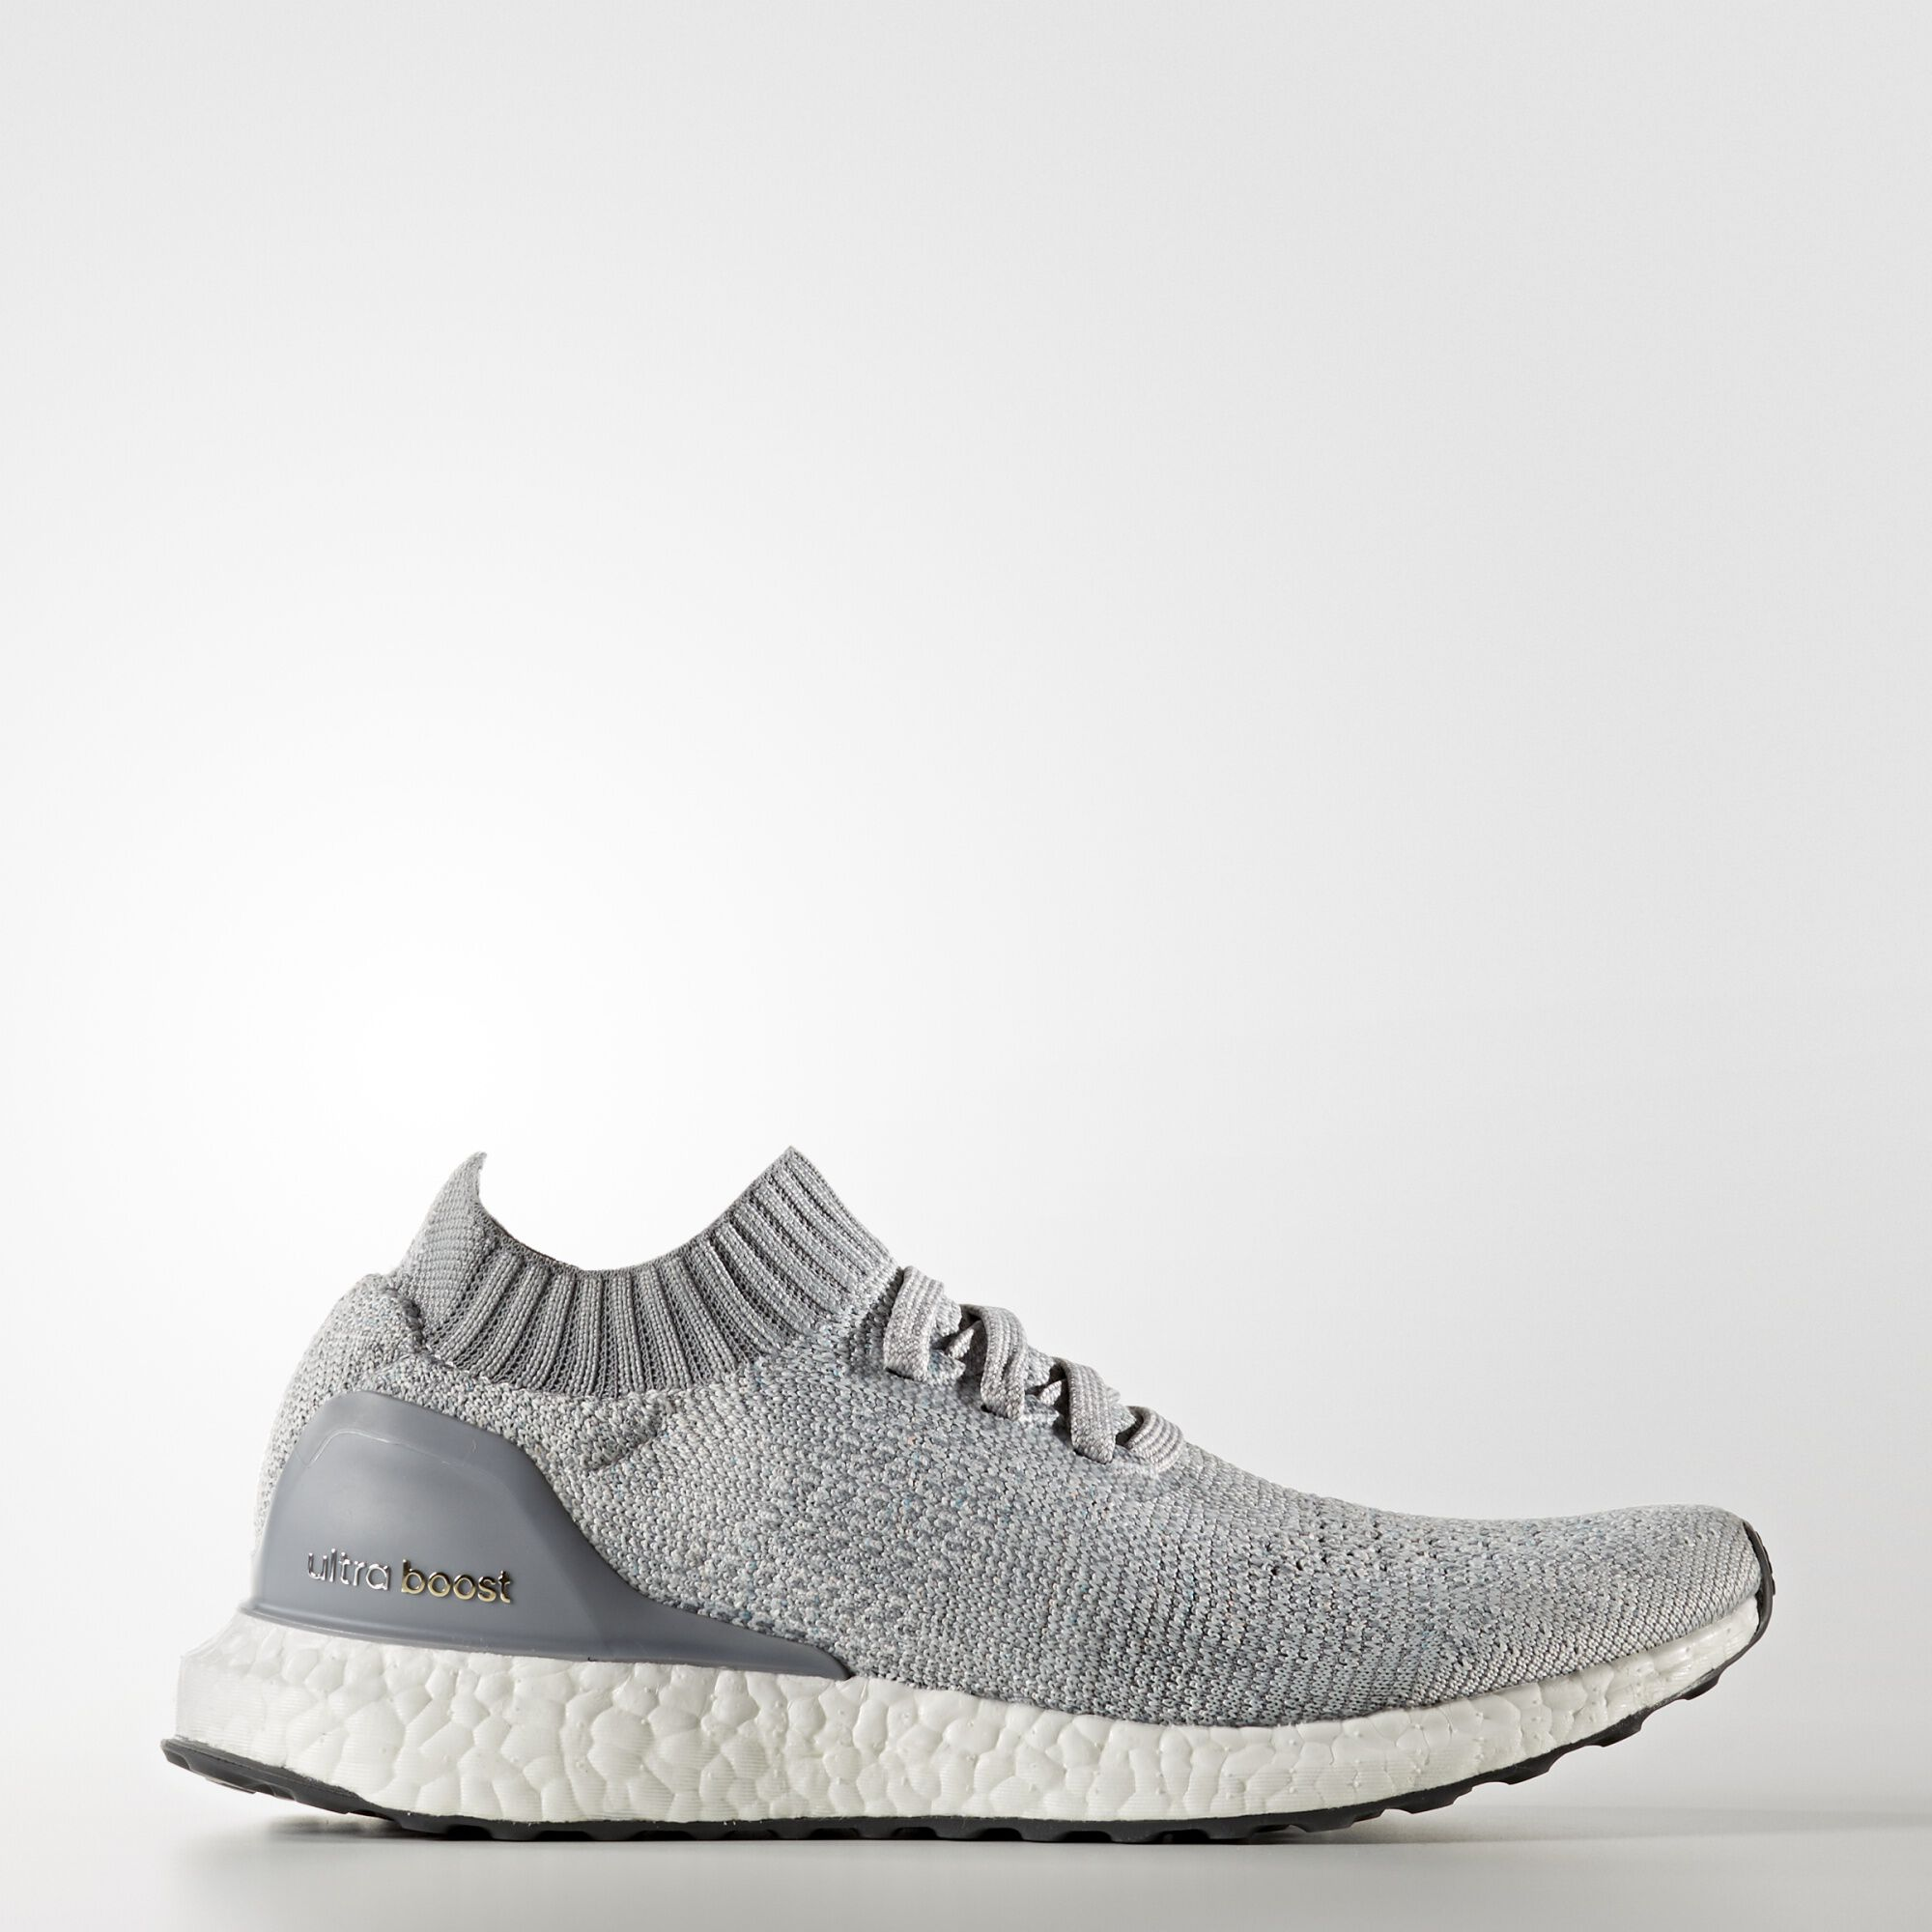 adidas boost shoes gray